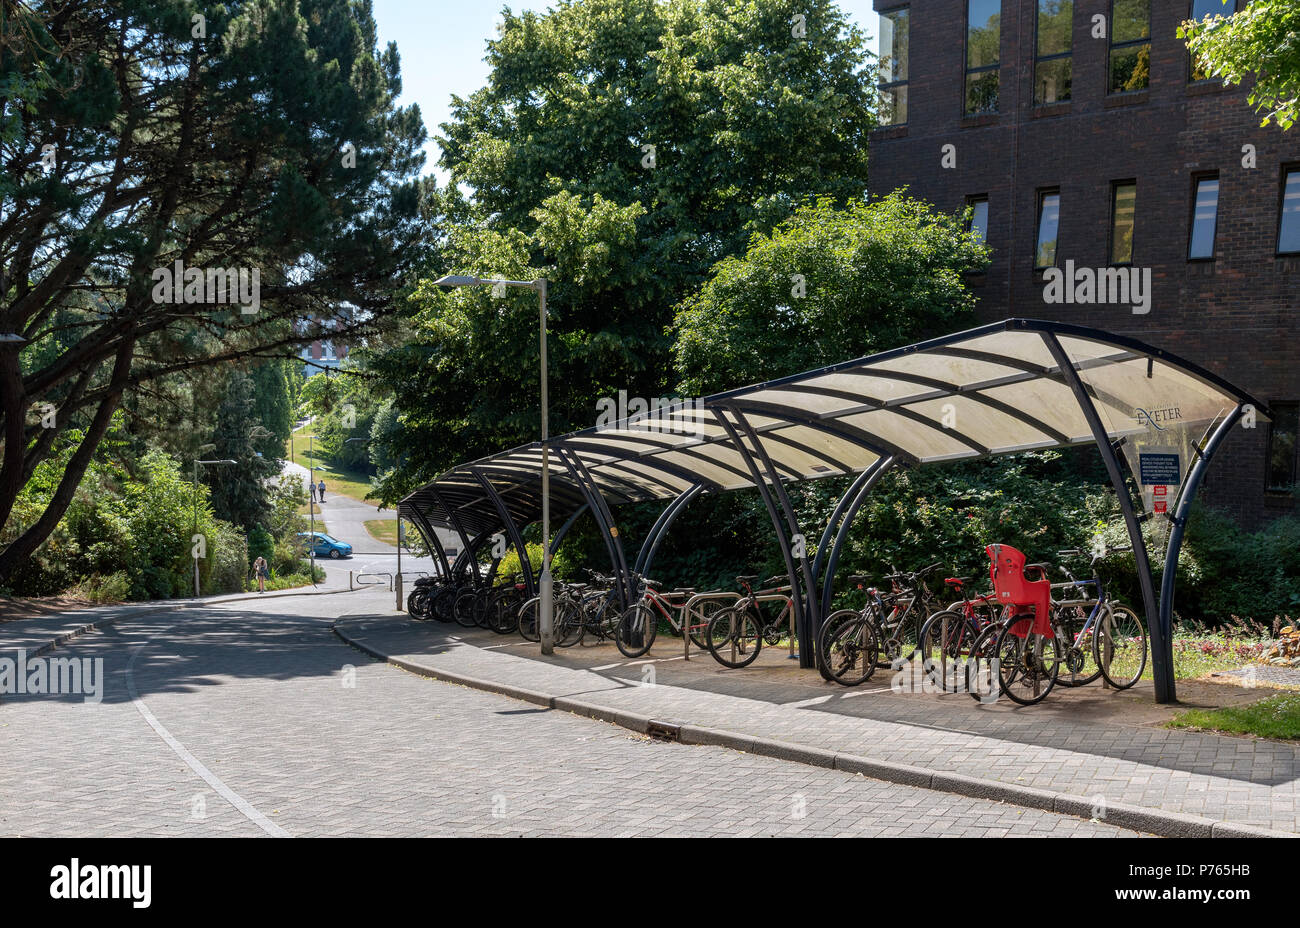 Exeter University, The Streatham Campus, Exeter, Devon, England, UK. Undercover secure parking for student's pedal cycles - Stock Image